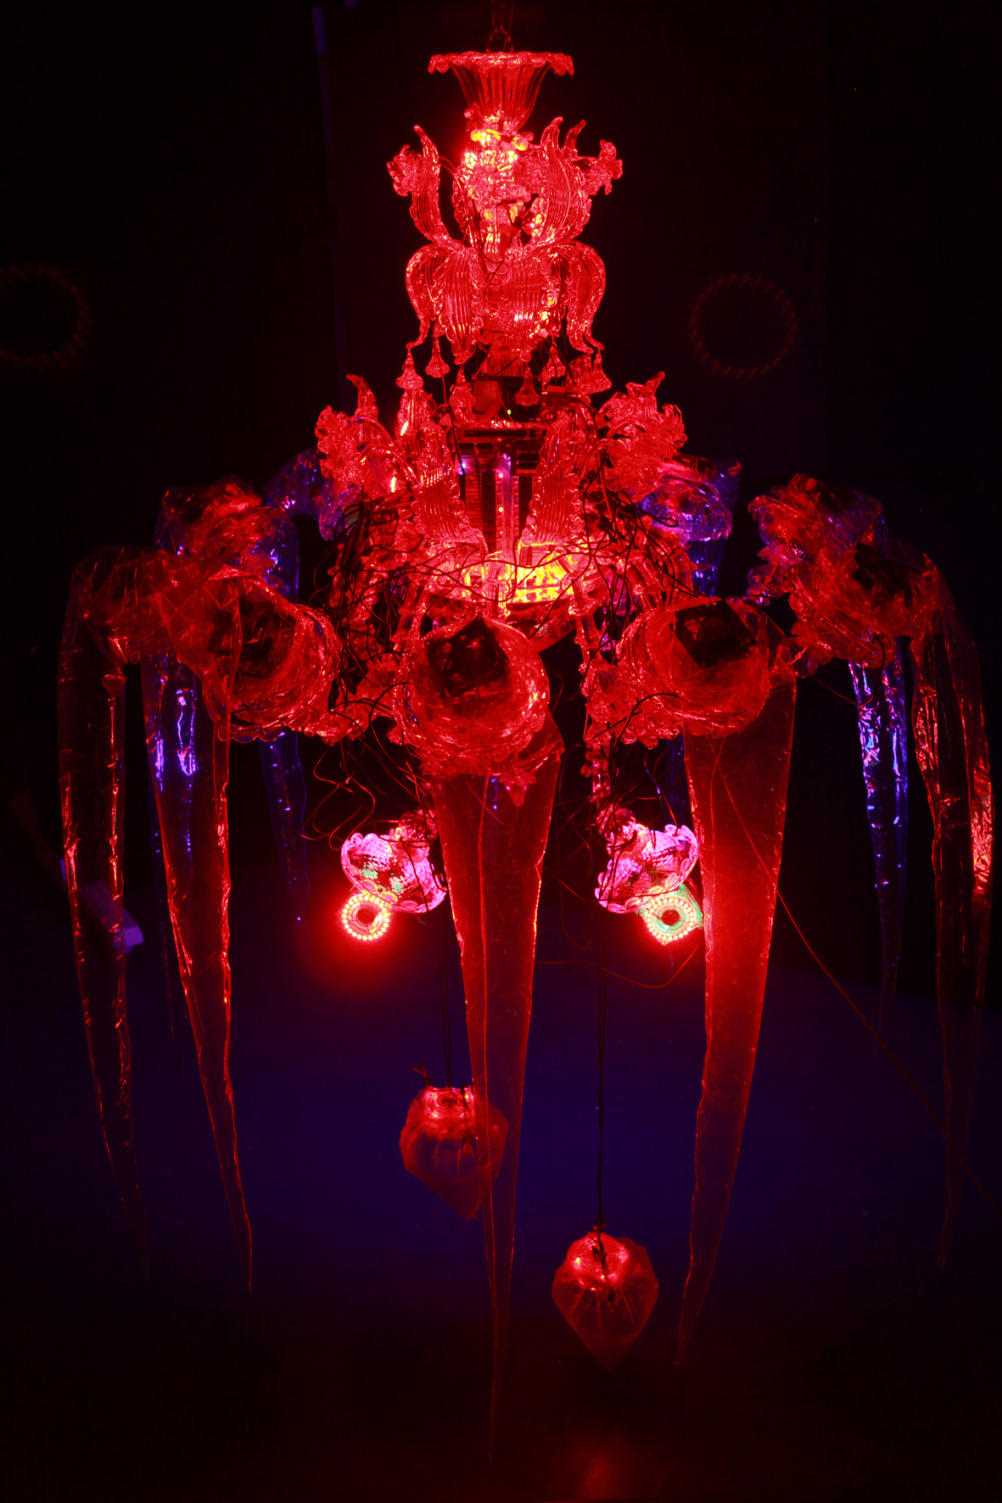 Shih Chieh Huang, Seductive Evolution of Animated Illumination, 2013